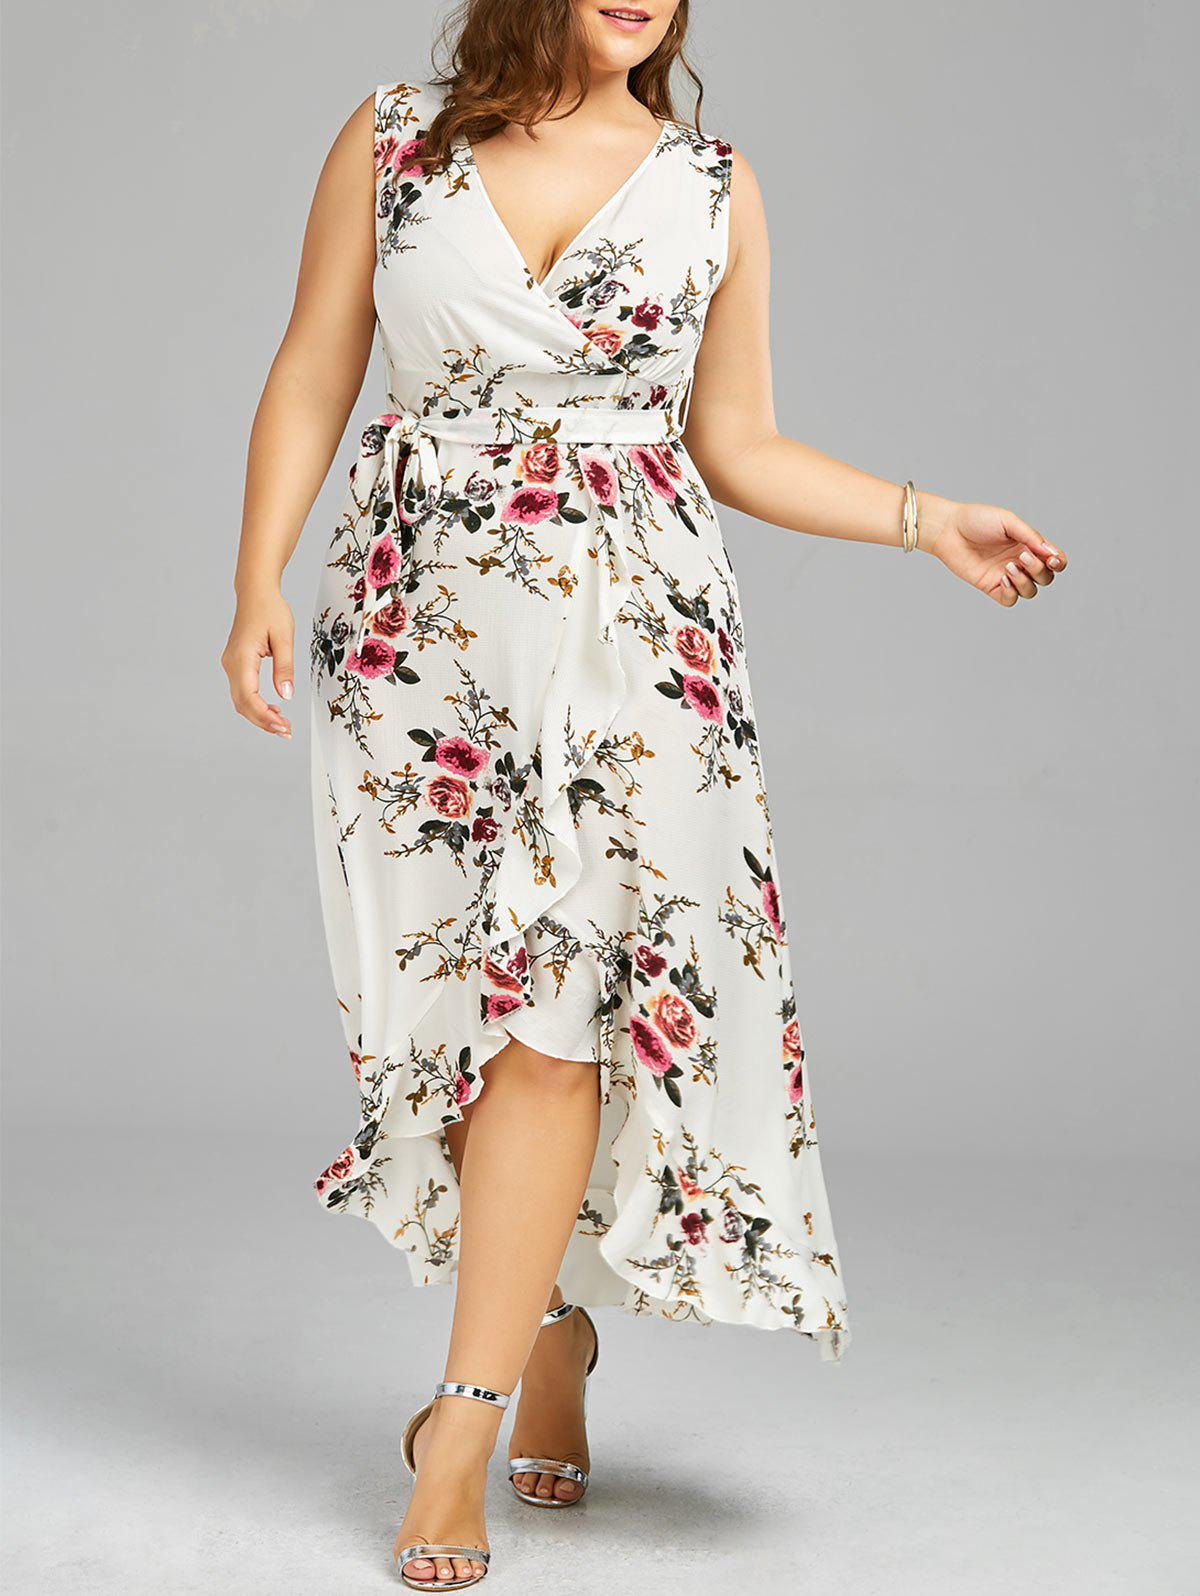 Plus Size High Low Long Floral DressWOMEN<br><br>Size: 3XL; Color: WHITE; Style: Bohemian; Material: Polyester; Silhouette: A-Line; Dresses Length: Ankle-Length; Neckline: Plunging Neck; Sleeve Length: Sleeveless; Pattern Type: Floral; With Belt: Yes; Season: Summer; Weight: 0.3700kg; Package Contents: 1 x Dress  1 x Belt;